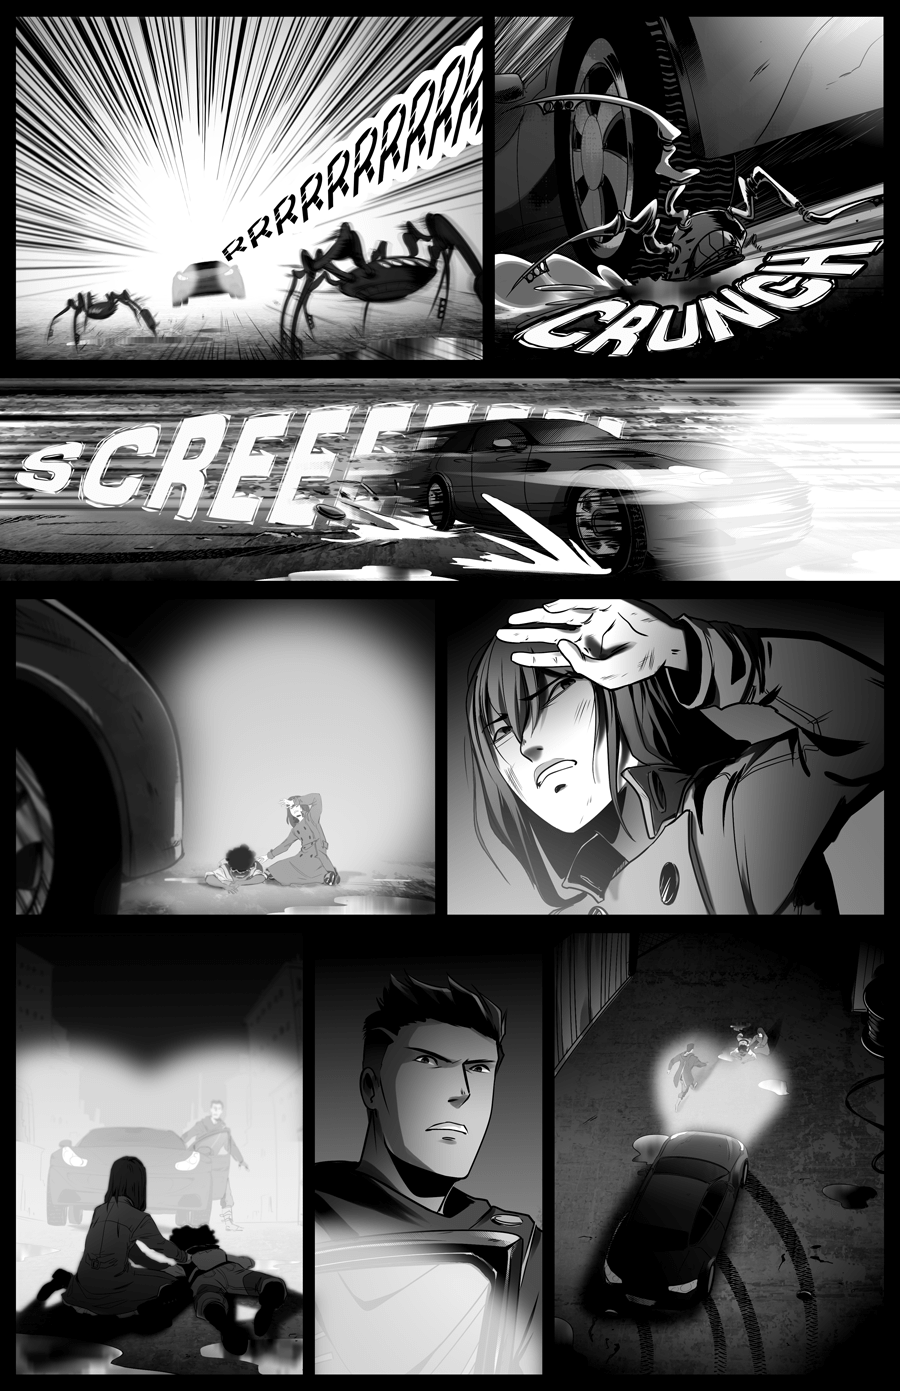 Centralia 2050 chapter 5 page 11